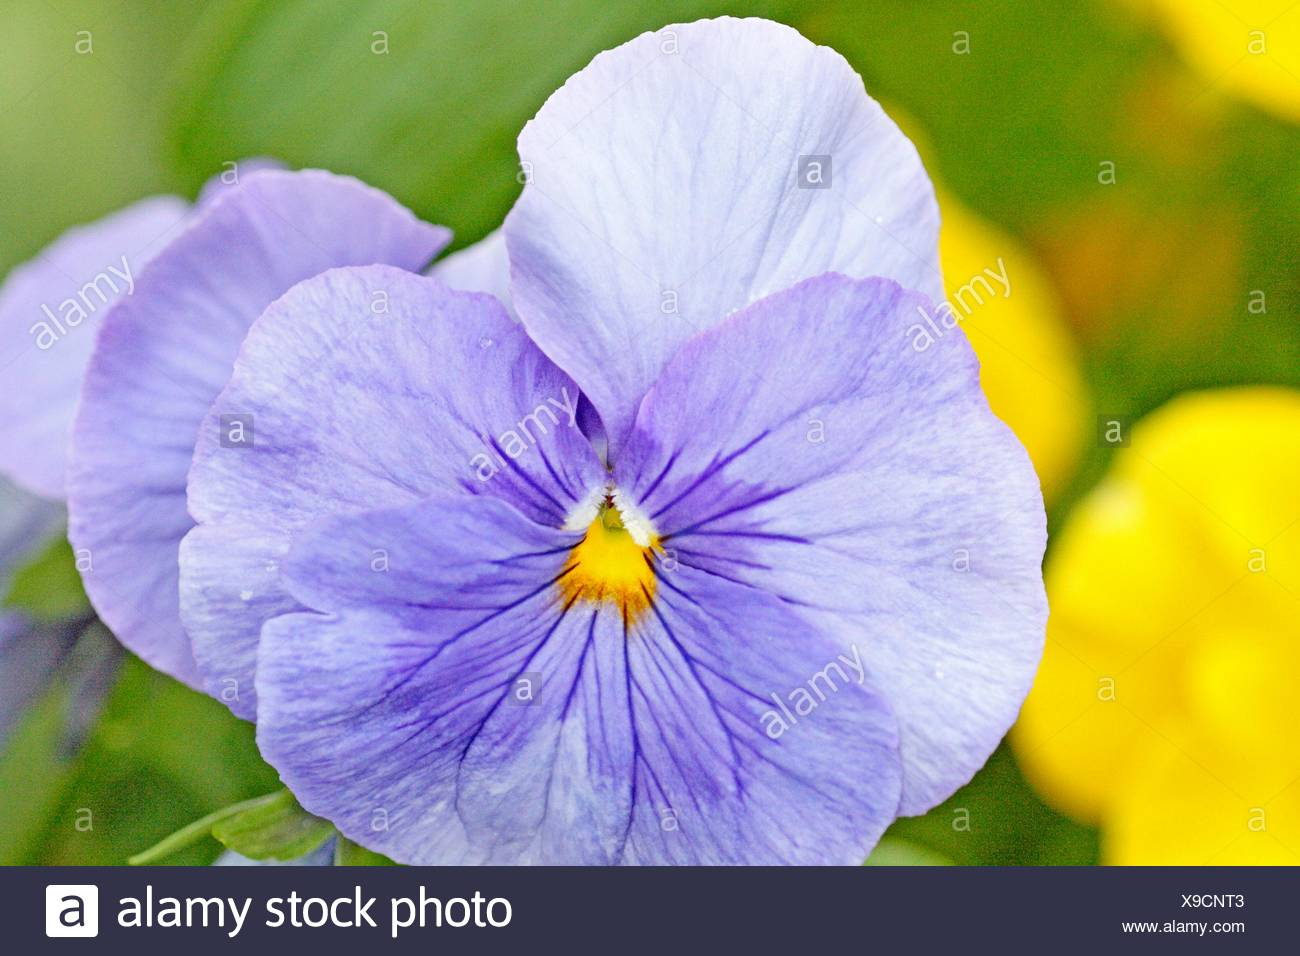 Large Round Blue Pansy Periwinkle Blue Pansy With Small Yellow